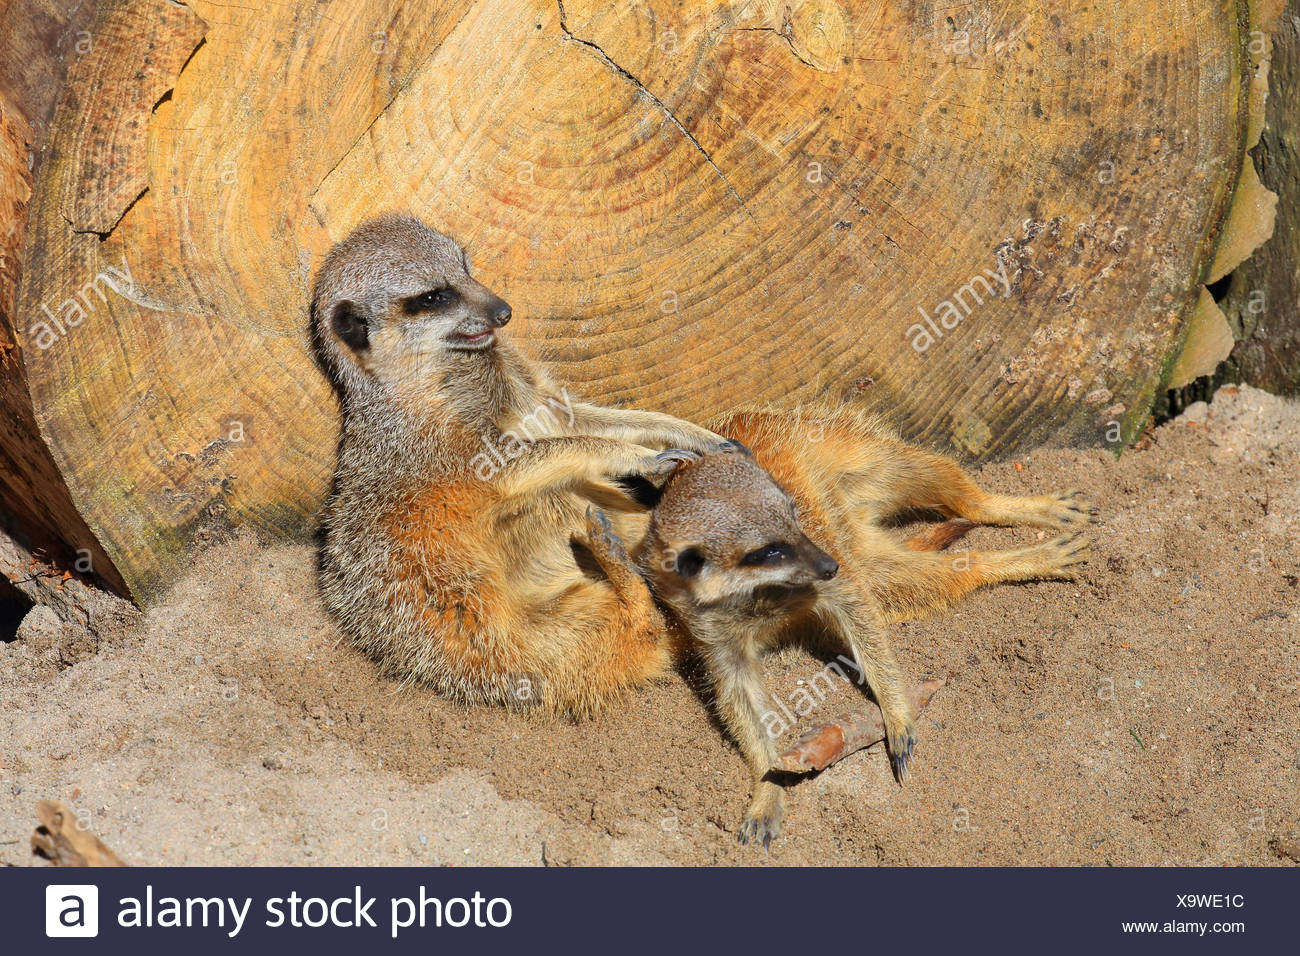 suricate, slender-tailed meerkat (Suricata suricatta), two suricates snuggling with each other - Stock Image